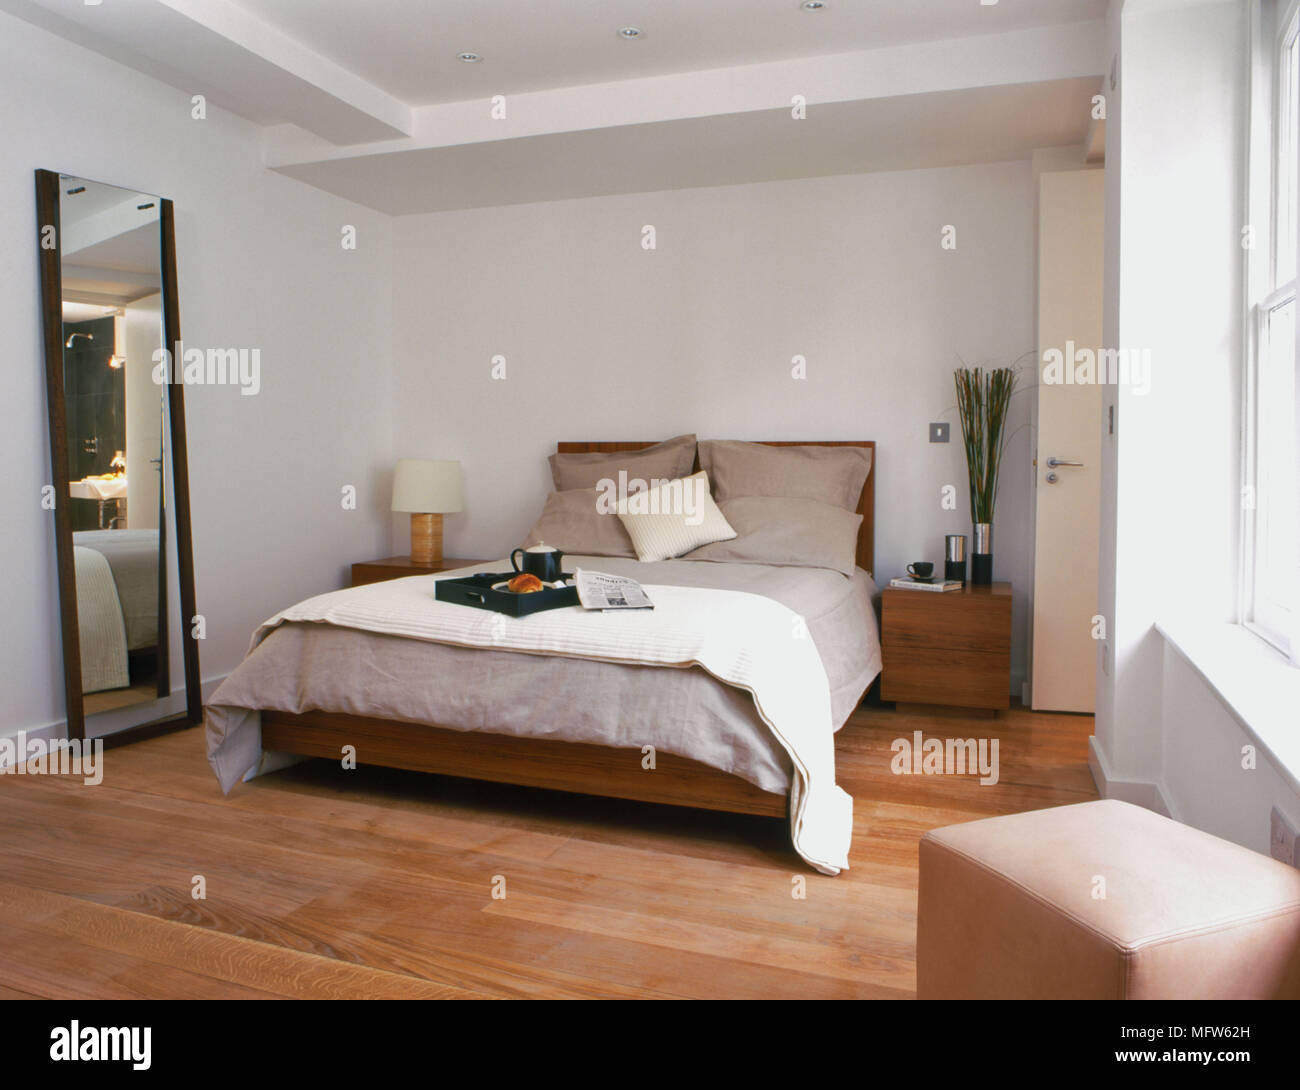 Details of a modern bedroom with a large full length mirror next to ...